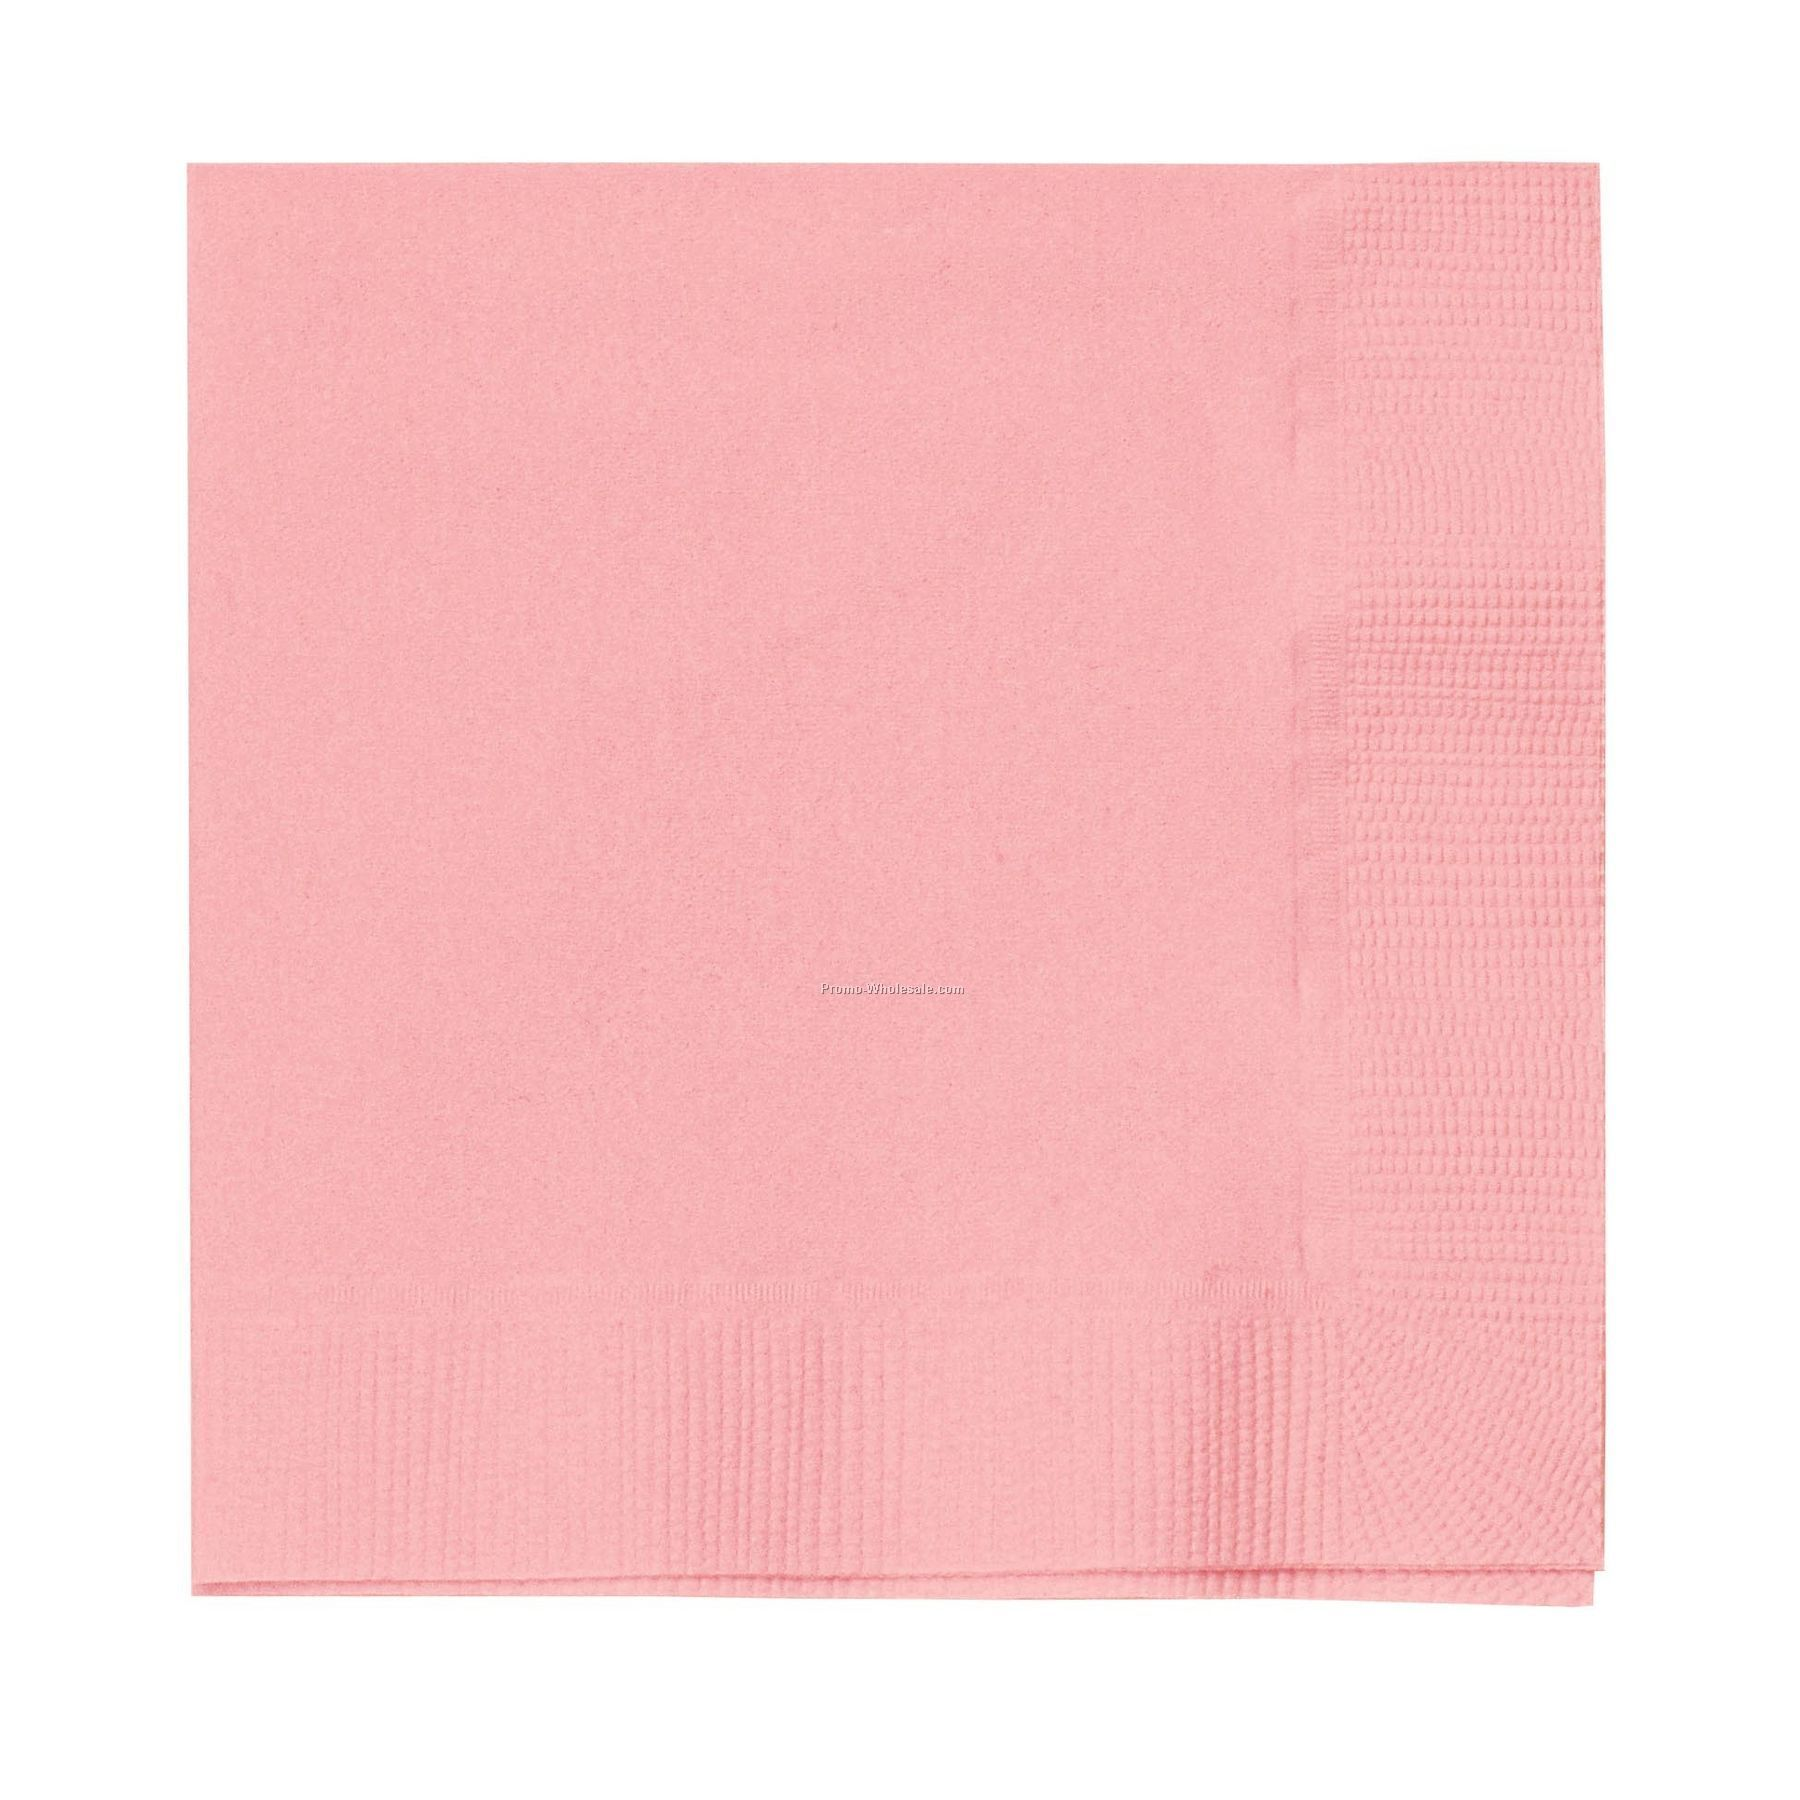 The 500 Line Colorware Classic Pink Dinner Napkins W/ 1/4 Fold